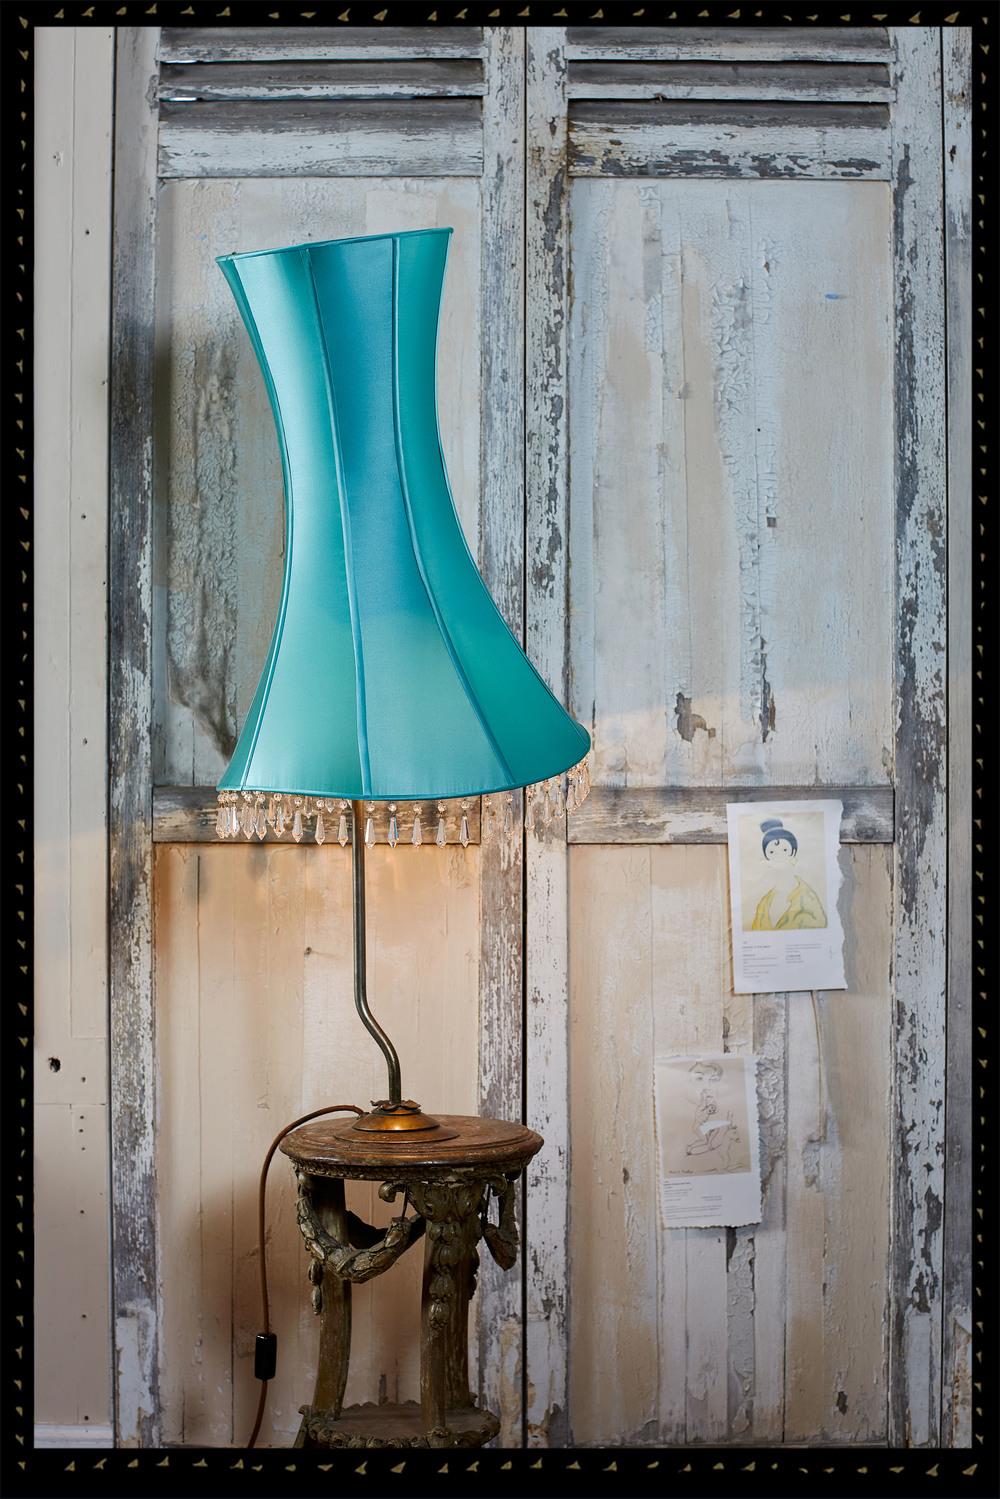 'Amaryllis' lampshade in turquoise satin on vintage brass lampstand